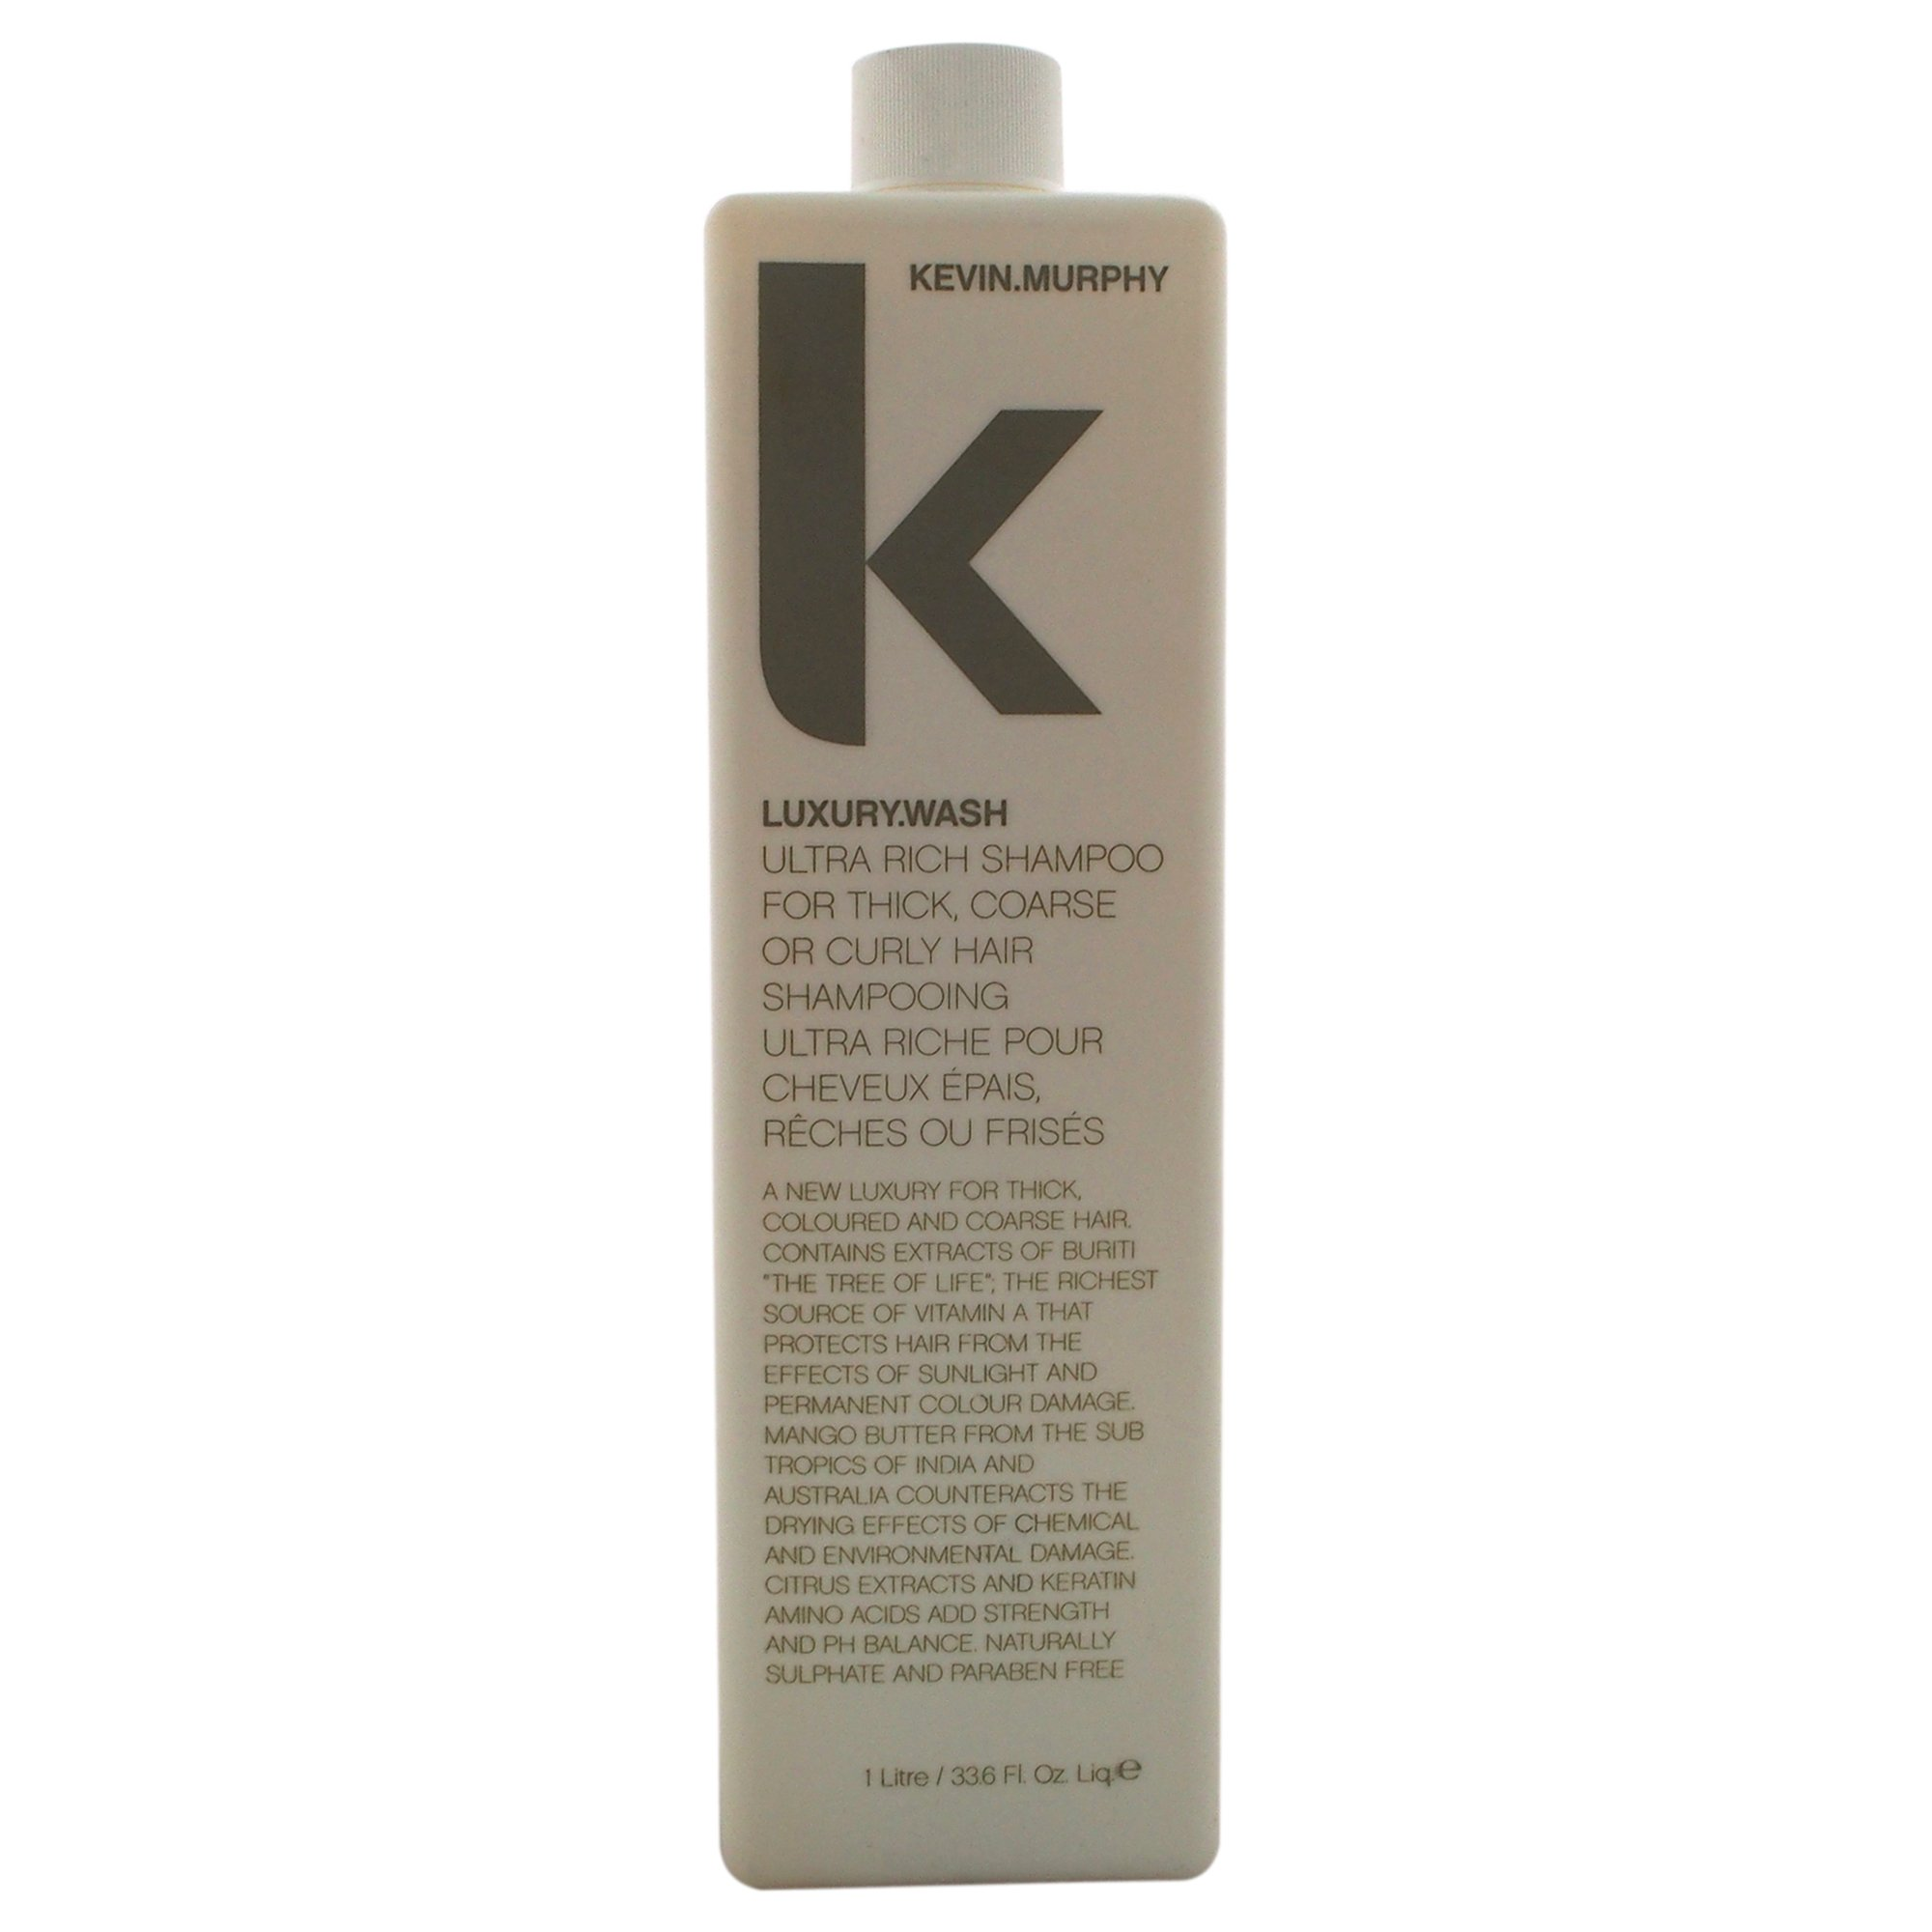 Kevin Murphy Luxury Wash Shampoo for Thick, Coarse or Curly Hair, 33.6 Ounce